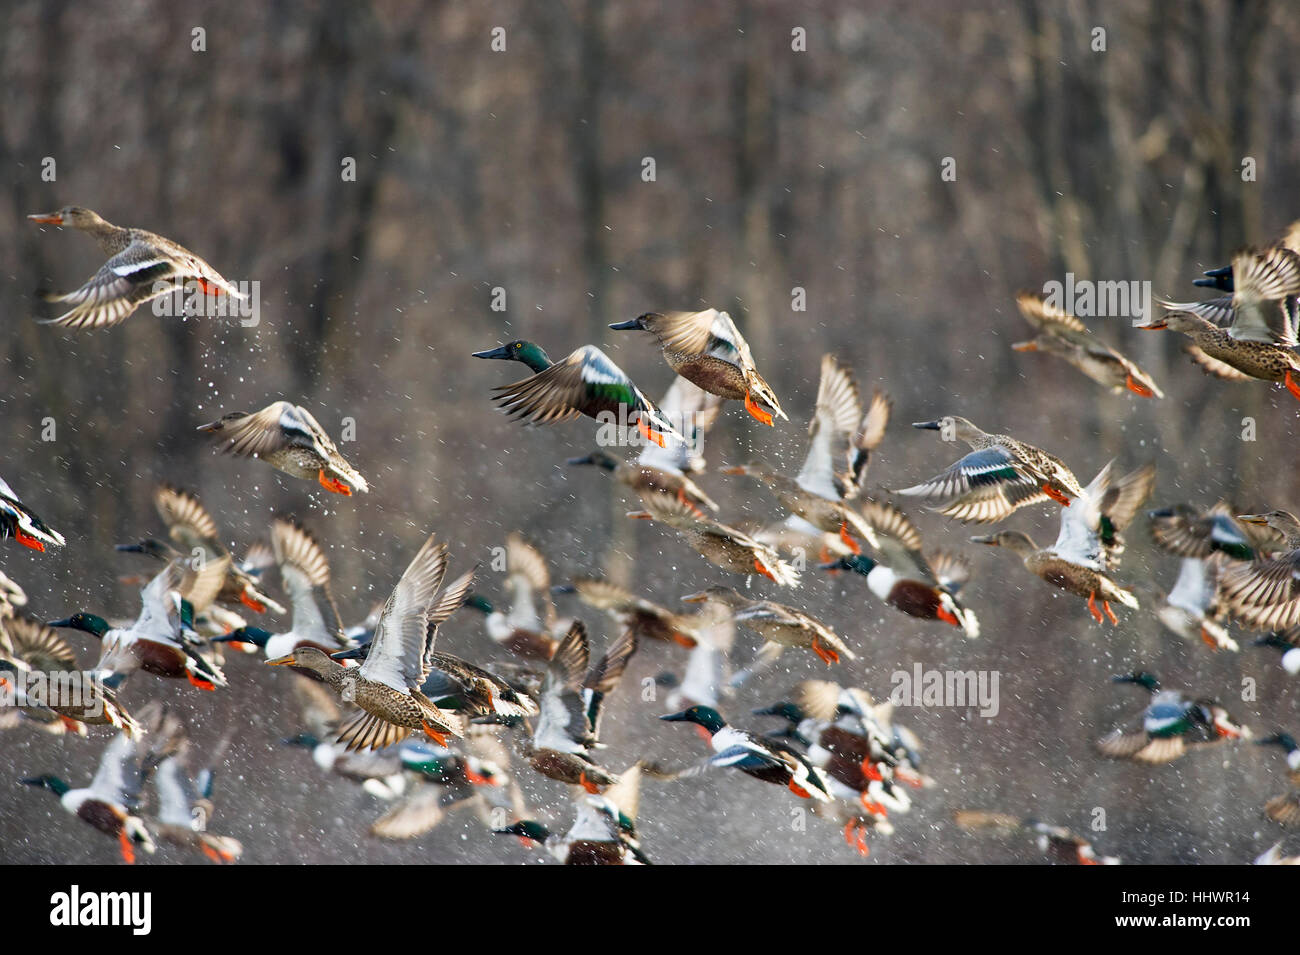 A large flock of Northern Shoveler ducks take off quickly out of the water creating a lot of splashing. - Stock Image